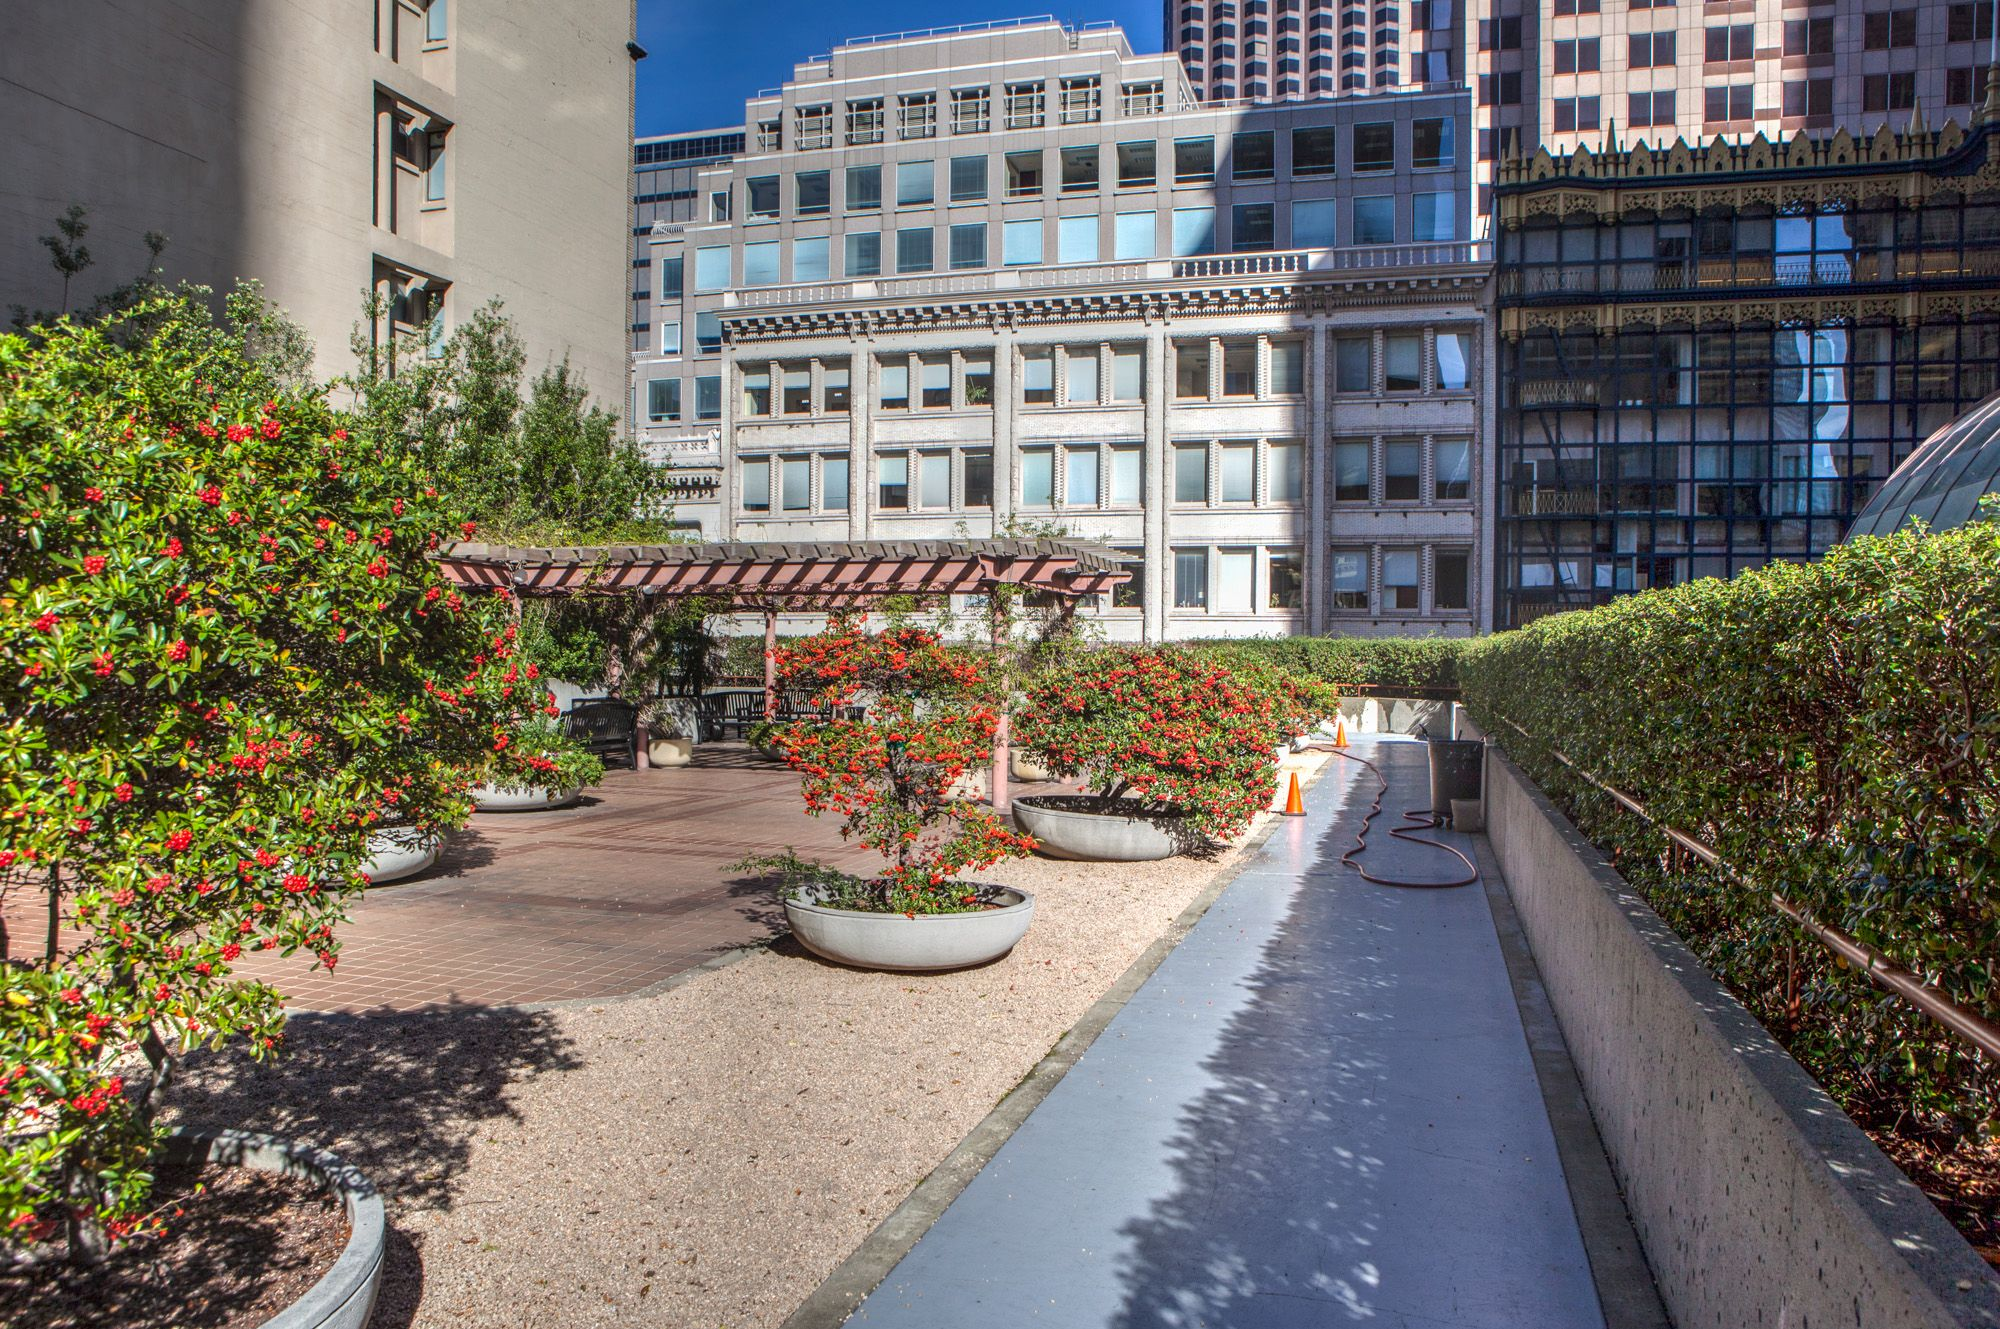 San Francisco S Hidden Rooftop Gardens The Complete List